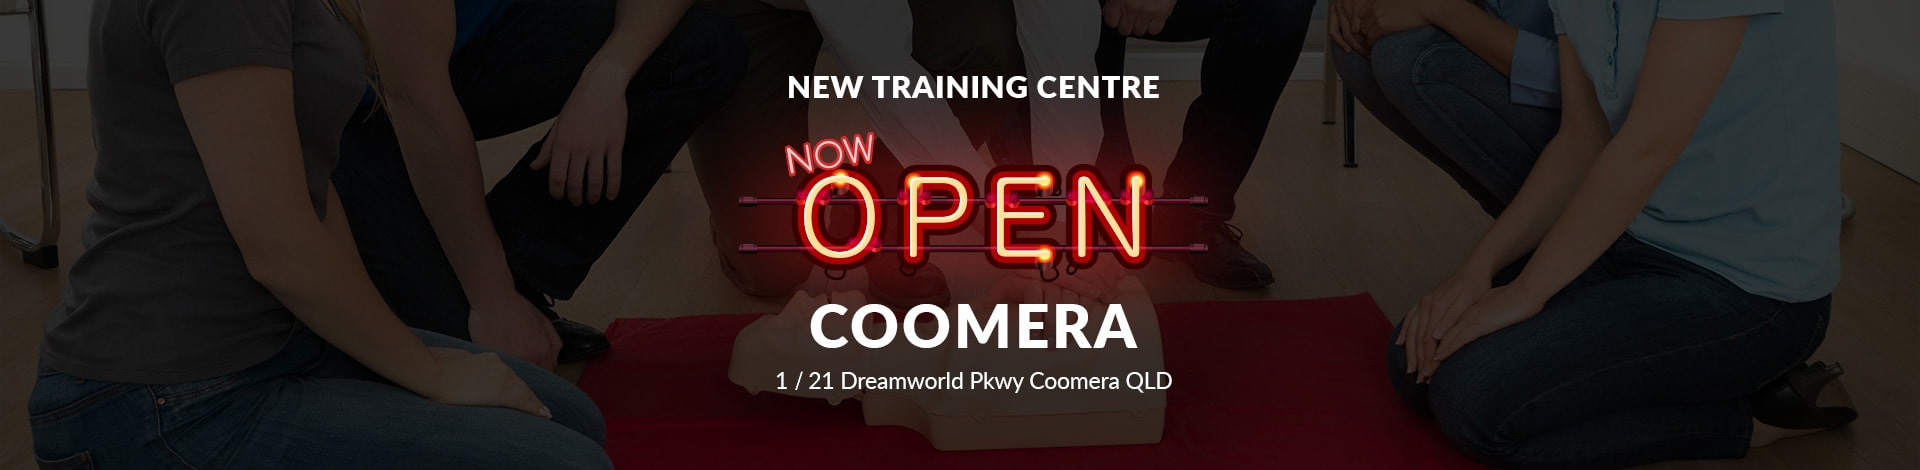 The New Coomera Training Centre now open at 1/21 Dreamworld Parkway neon banner